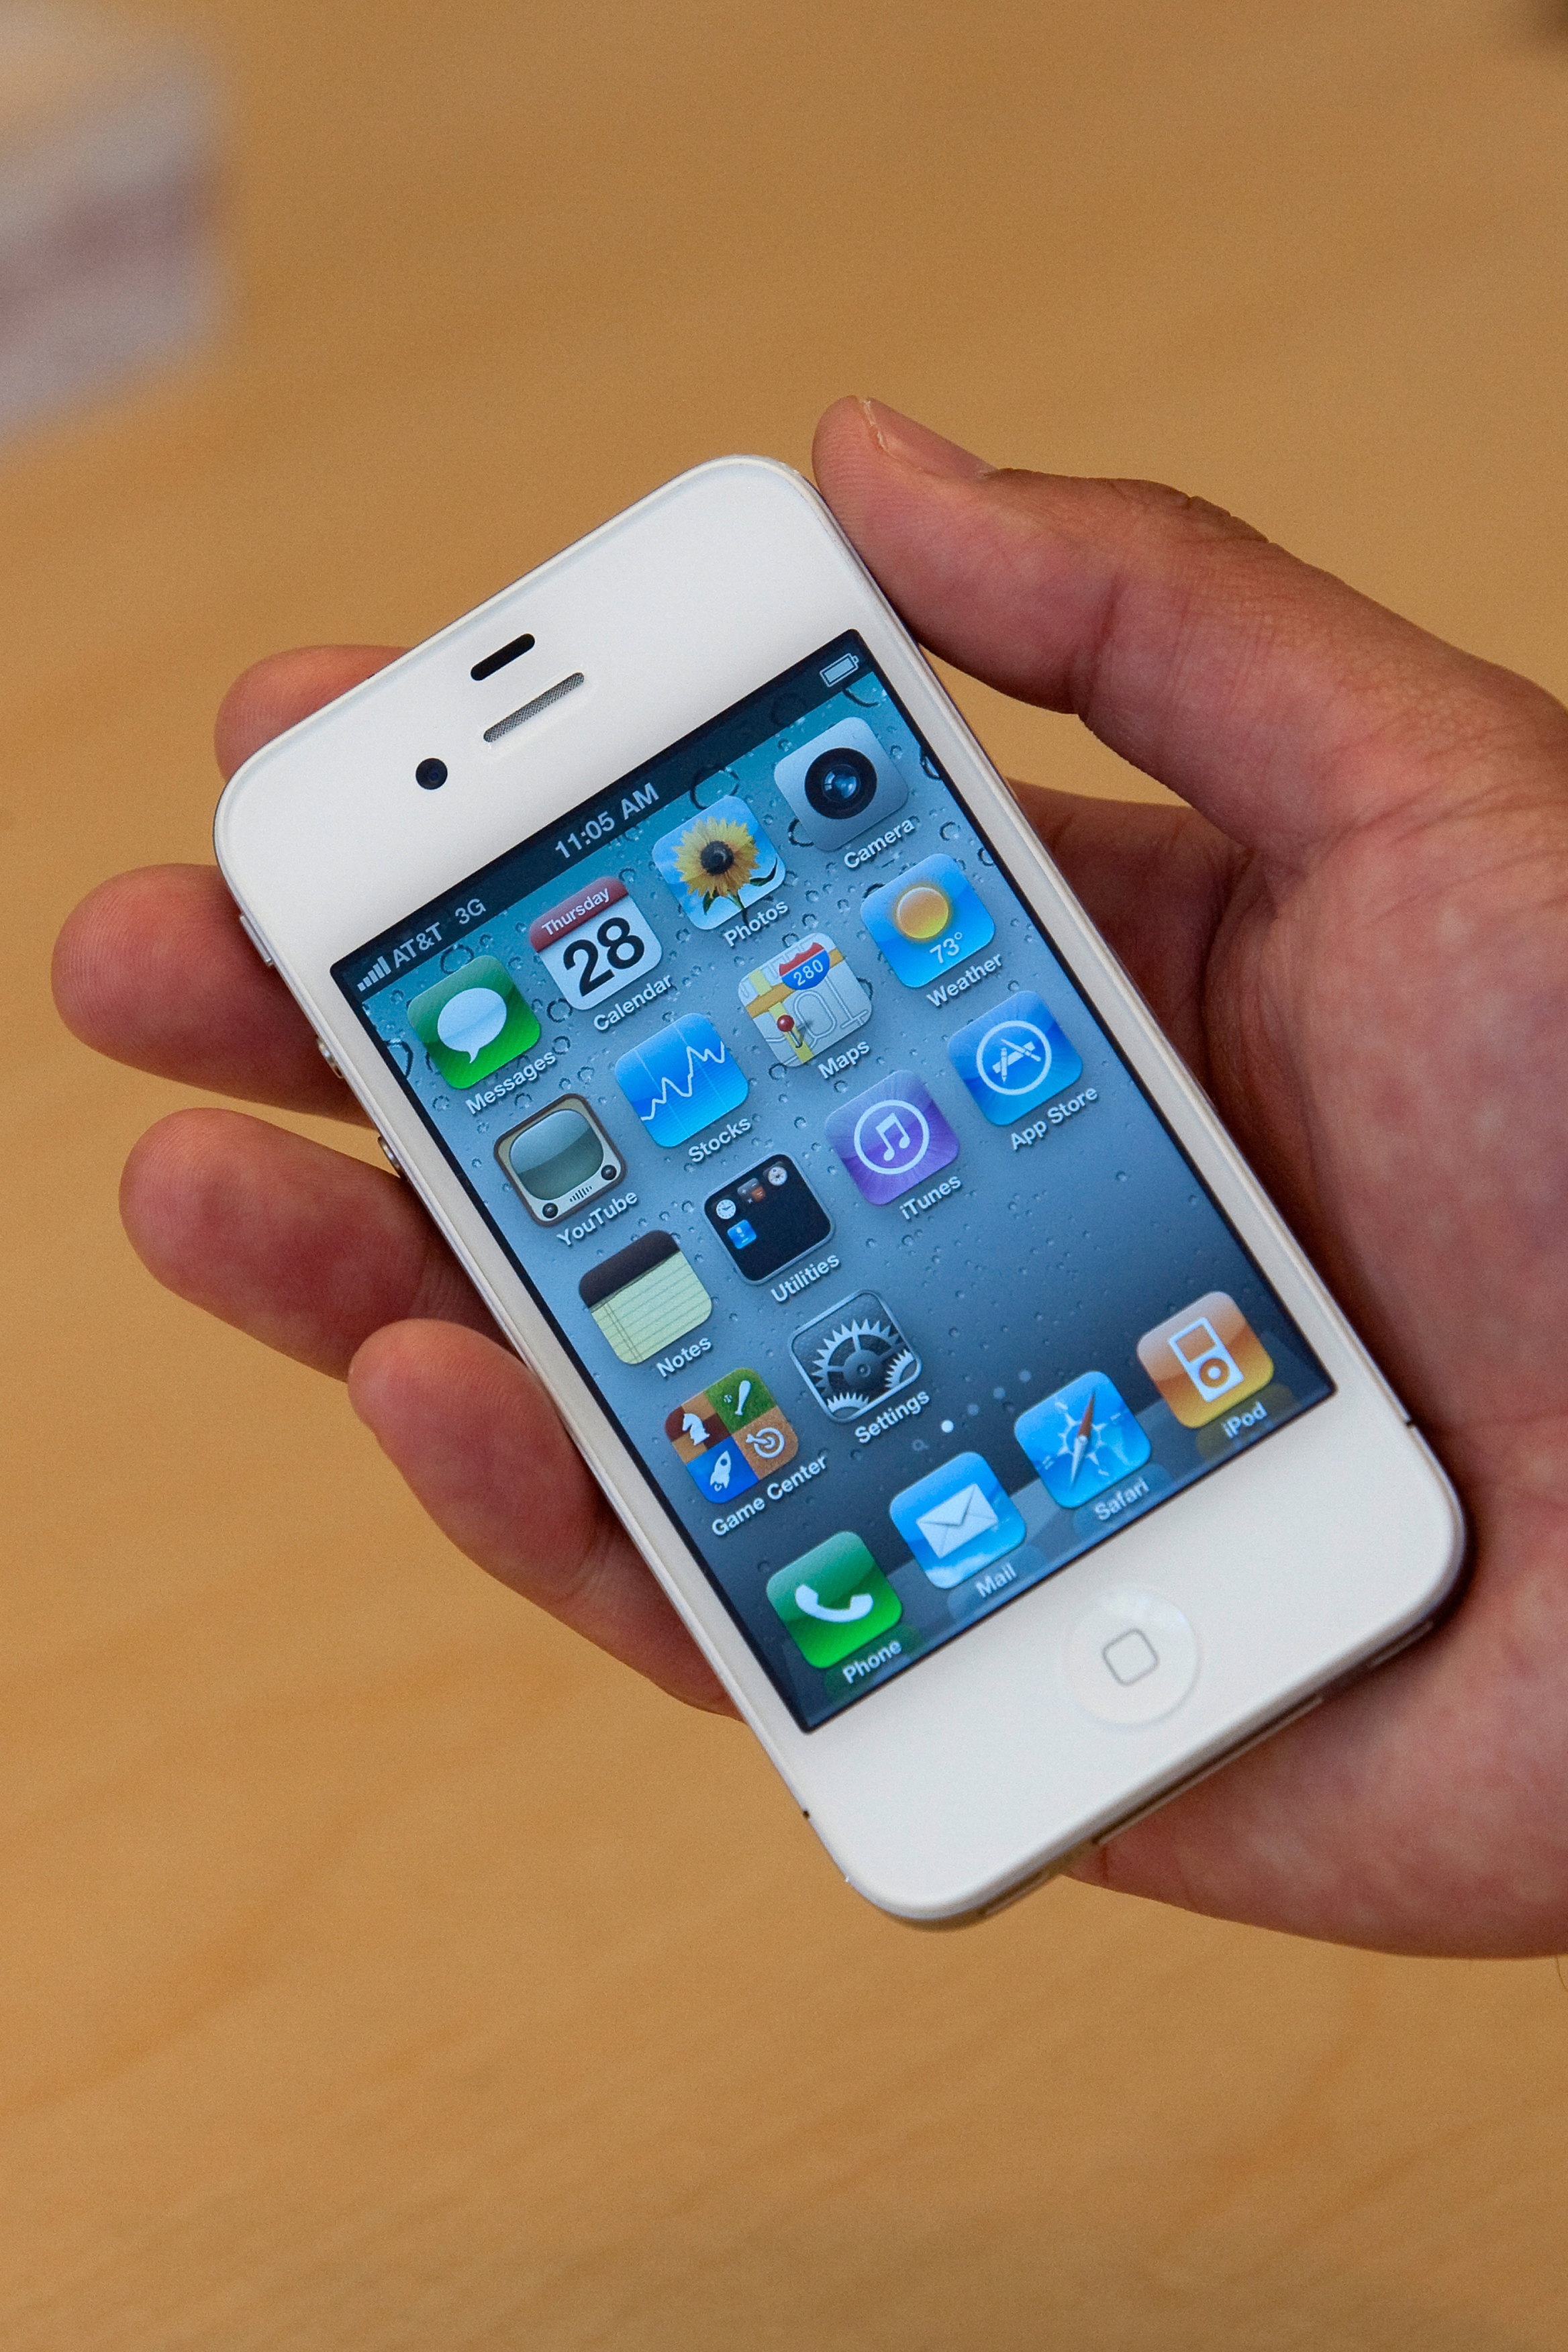 How to Turn Vibrate Off on an iPhone | Chron com